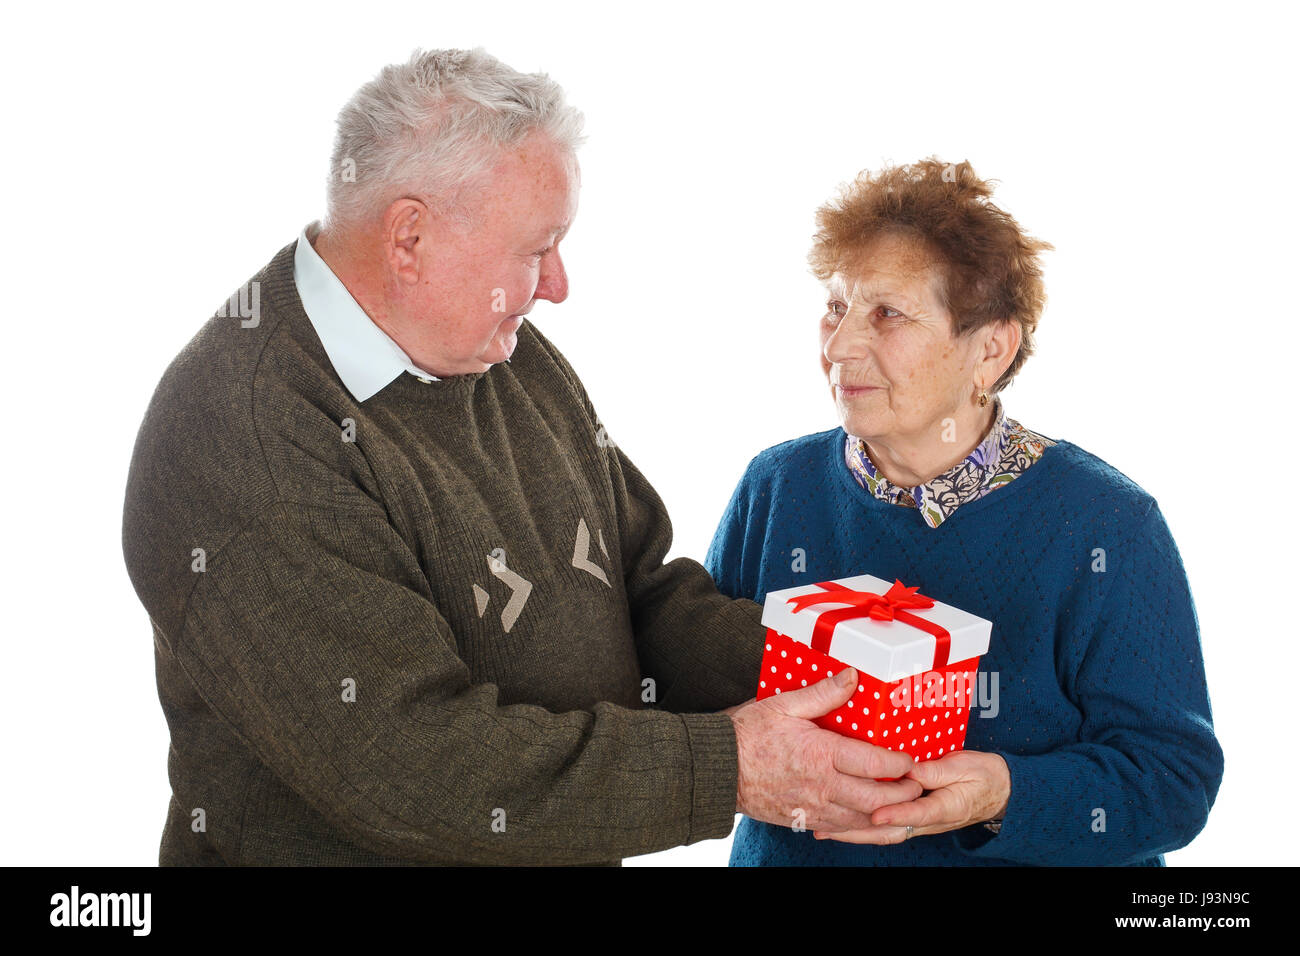 Picture of an old couple celebrating anniversary - isolated background - Stock Image